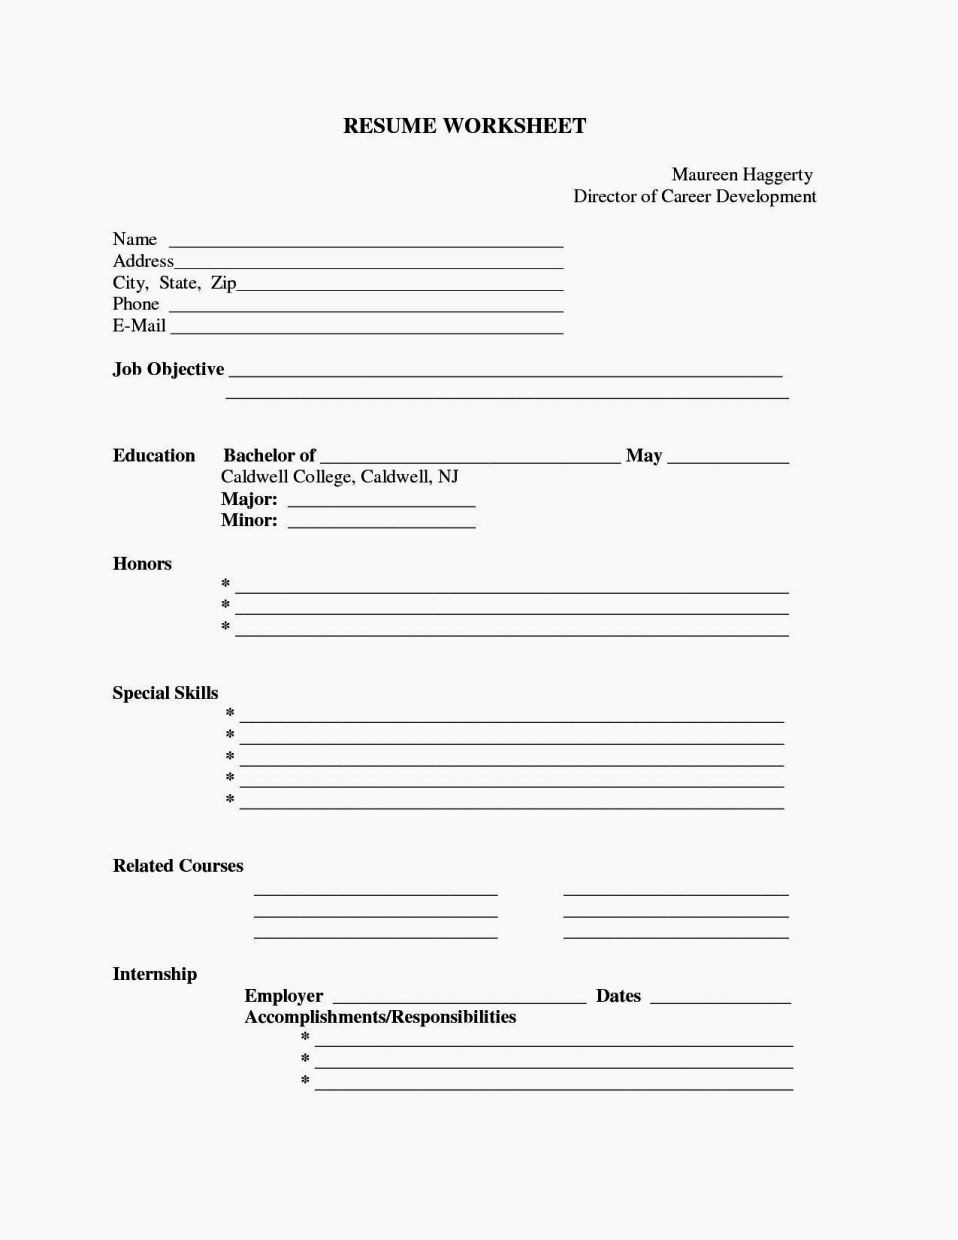 Resume forms to Fill Out Lovely Fill In Blank Resume Templates Free